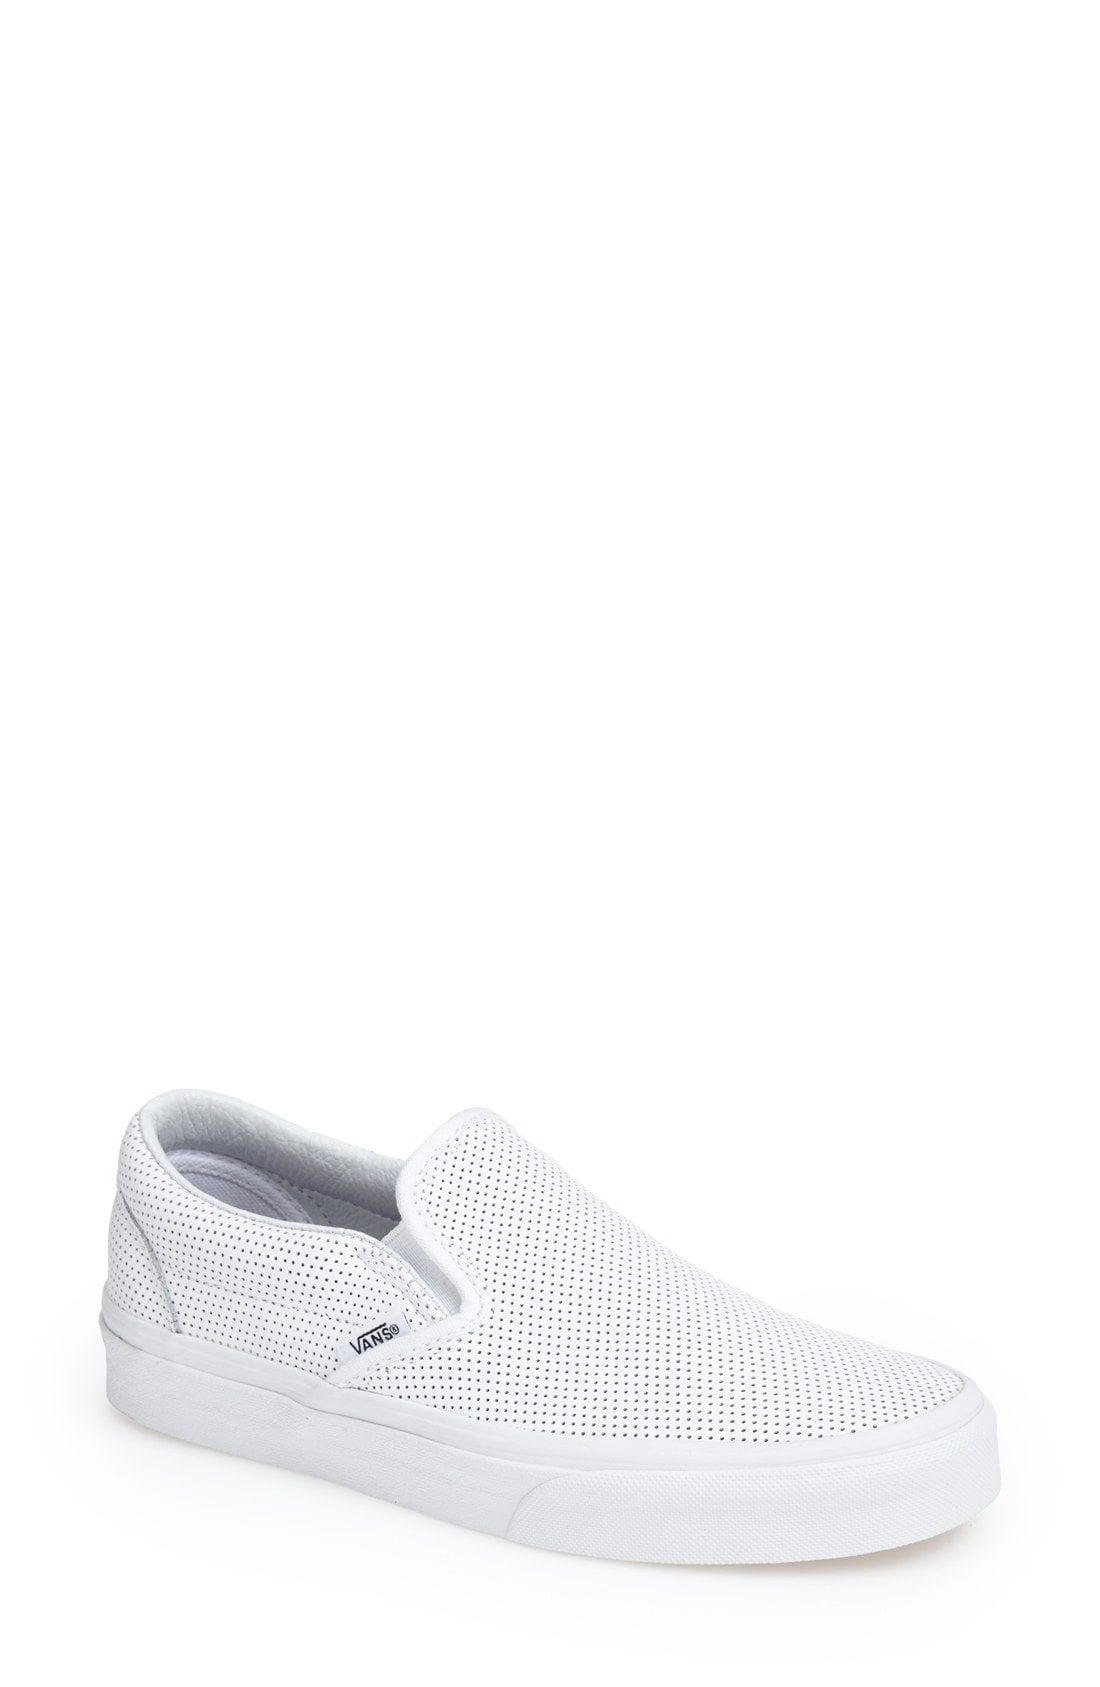 bc14cd064b vans white perforated leather classic slip-on sneaker